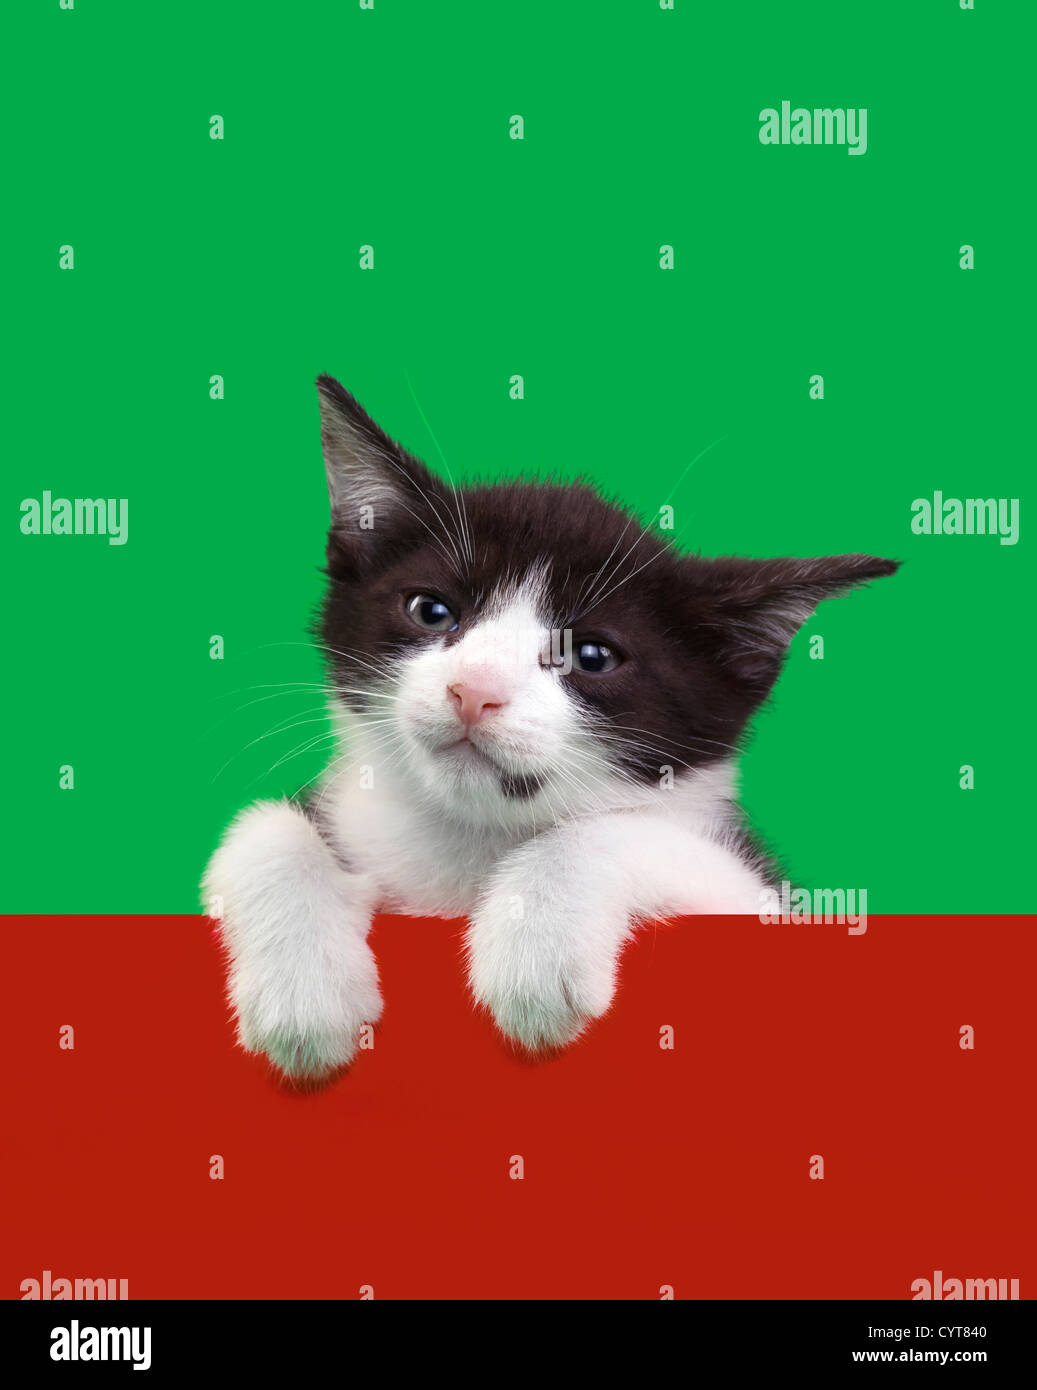 Black and White Domestic Cat Cutout on Green and Red Background ...